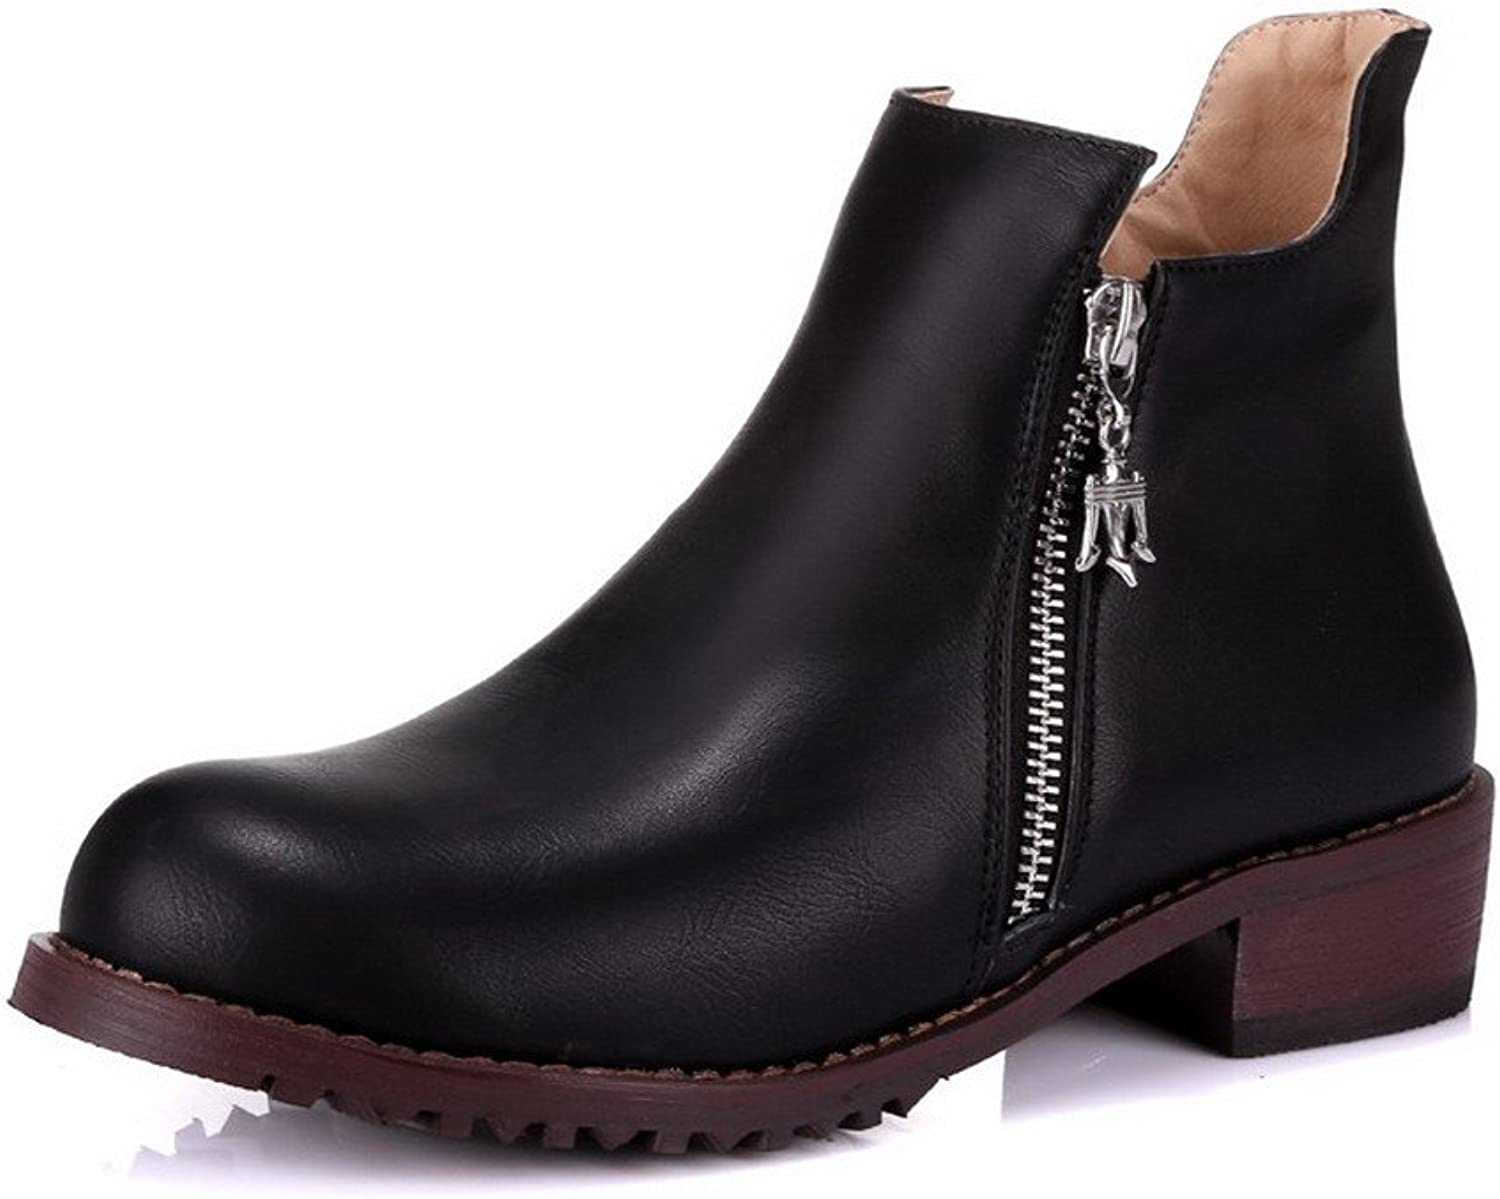 WeenFashion Women's PU Low-Heels Round-Toe Boots with Charms and Slipping Sole